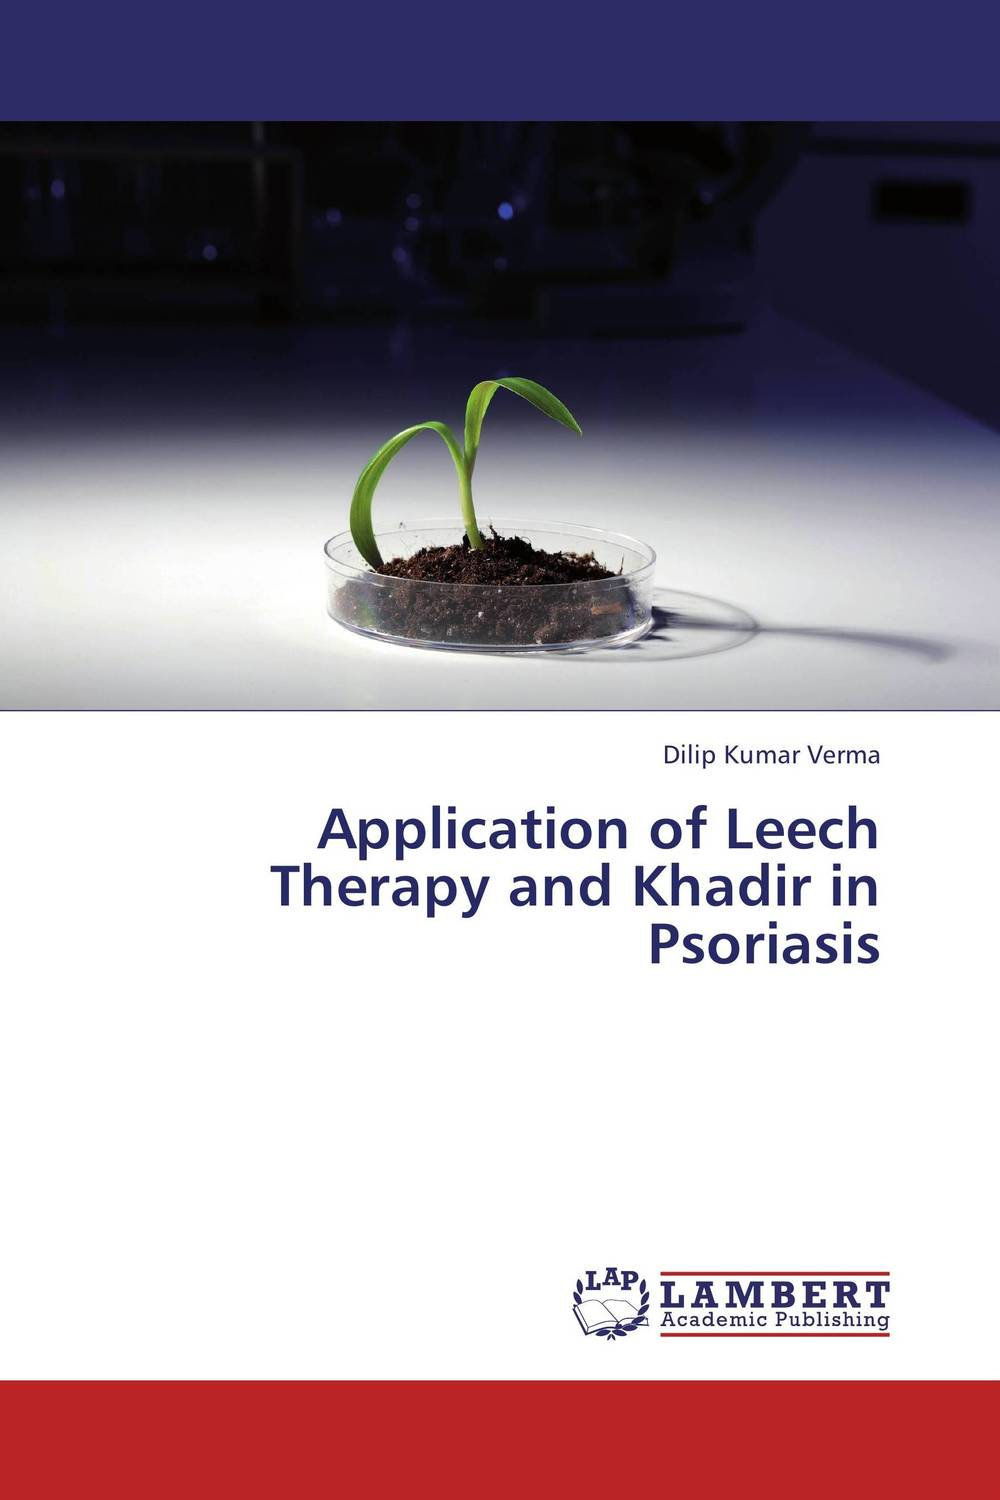 Application of Leech Therapy and Khadir in Psoriasis